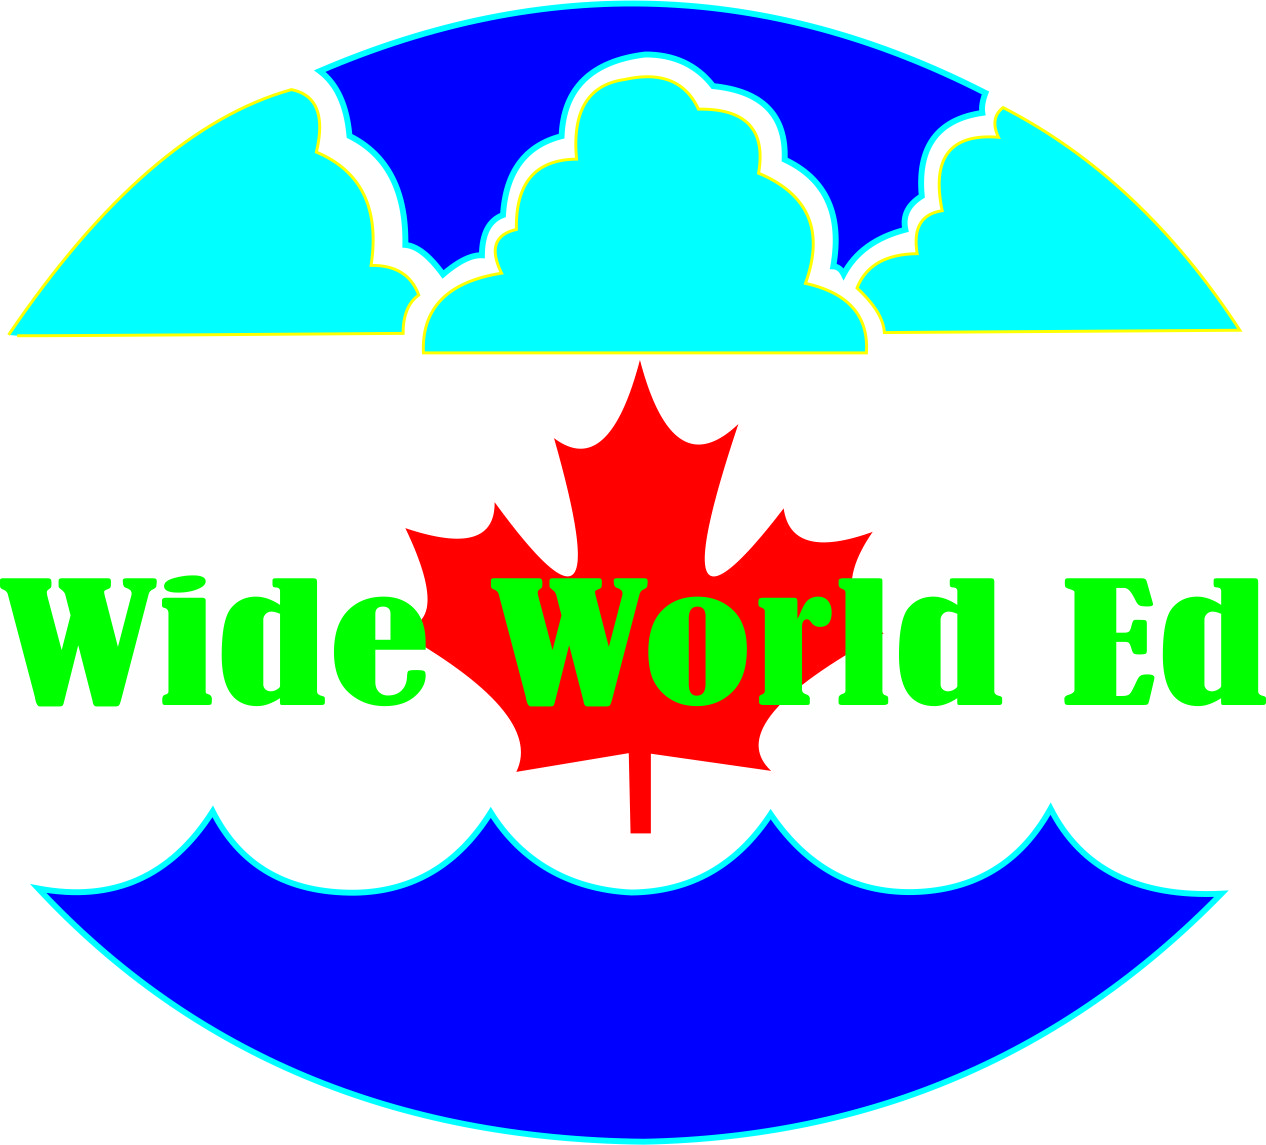 Logo Design by Teguh Hanuraga - Entry No. 18 in the Logo Design Contest New Logo Design for Wide World Ed.